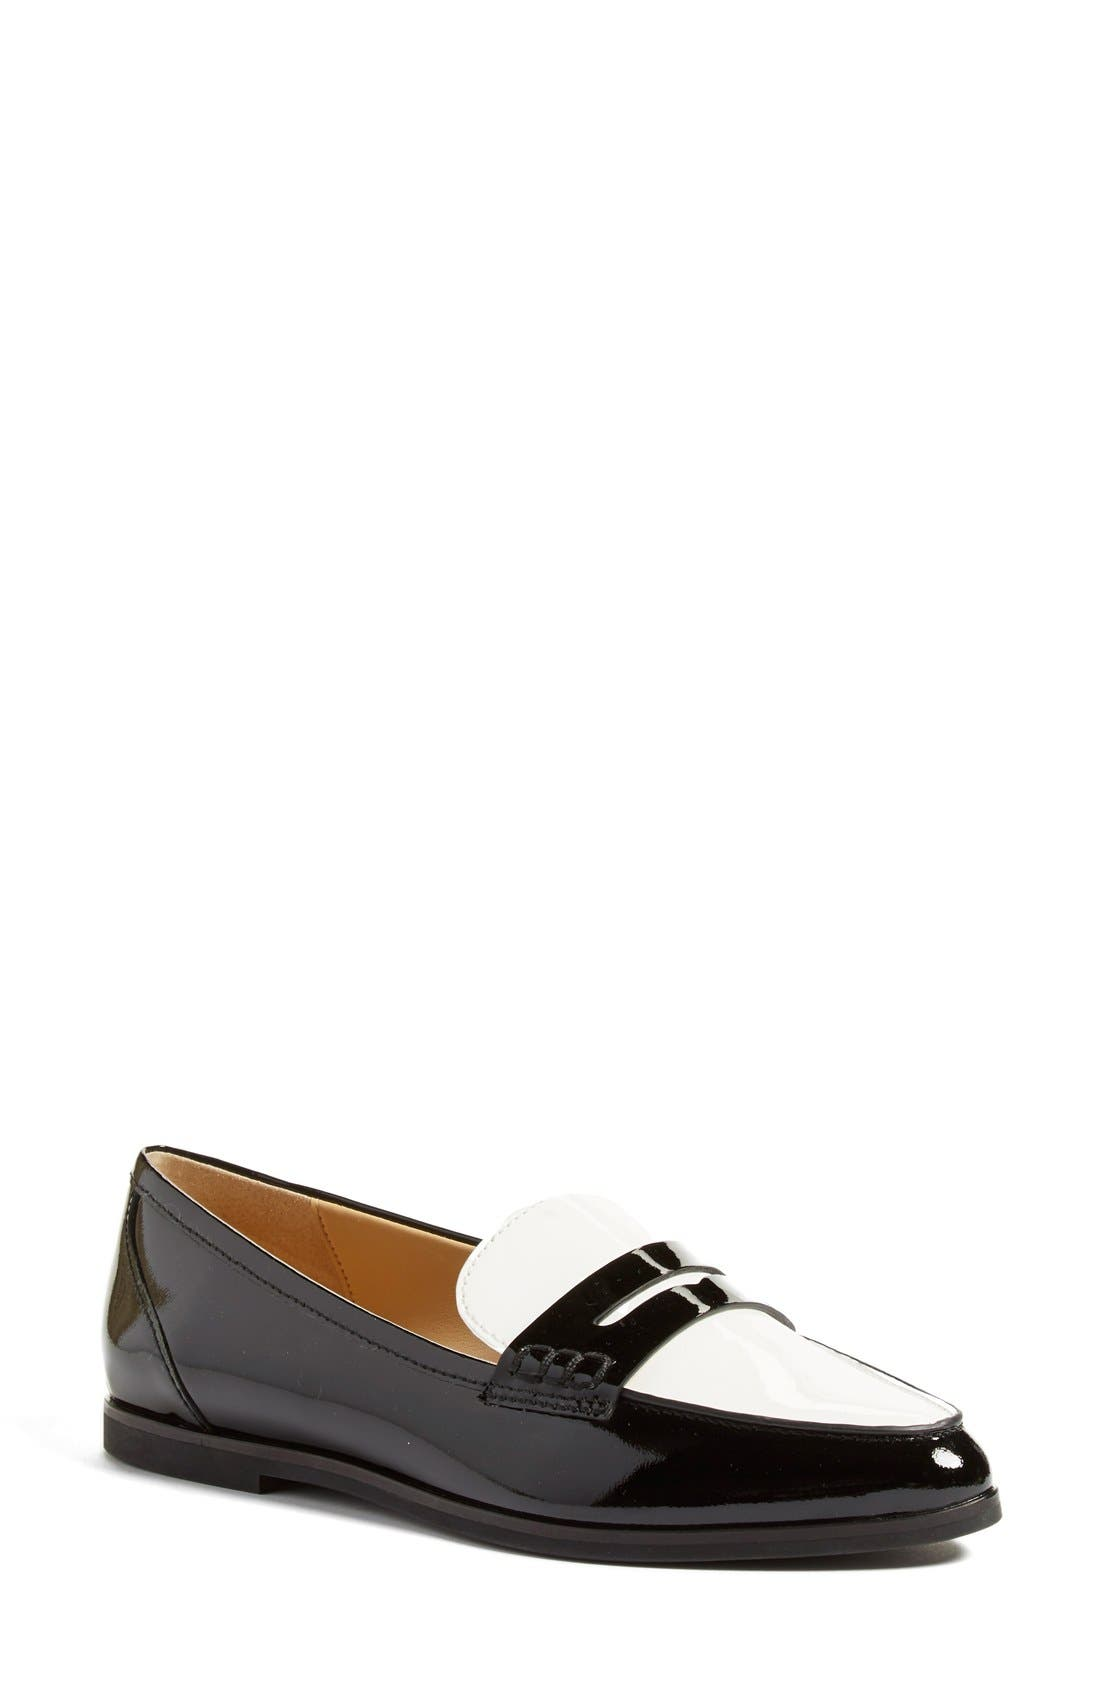 Alternate Image 1 Selected - MICHAEL Michael Kors 'Connor' Penny Loafer (Women)